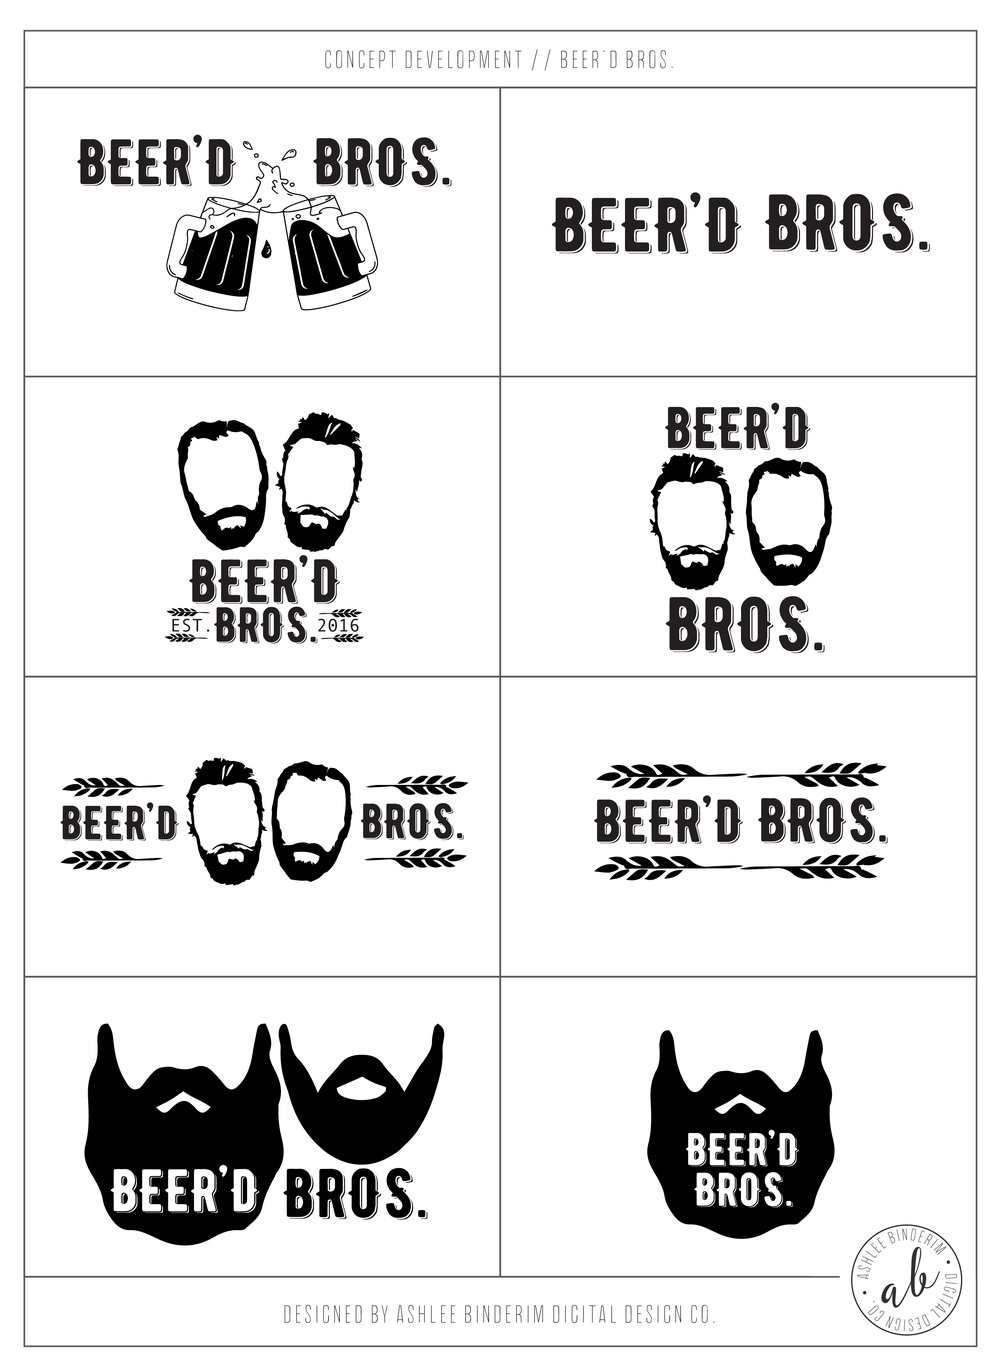 Concept Development – Beer'd Bros.